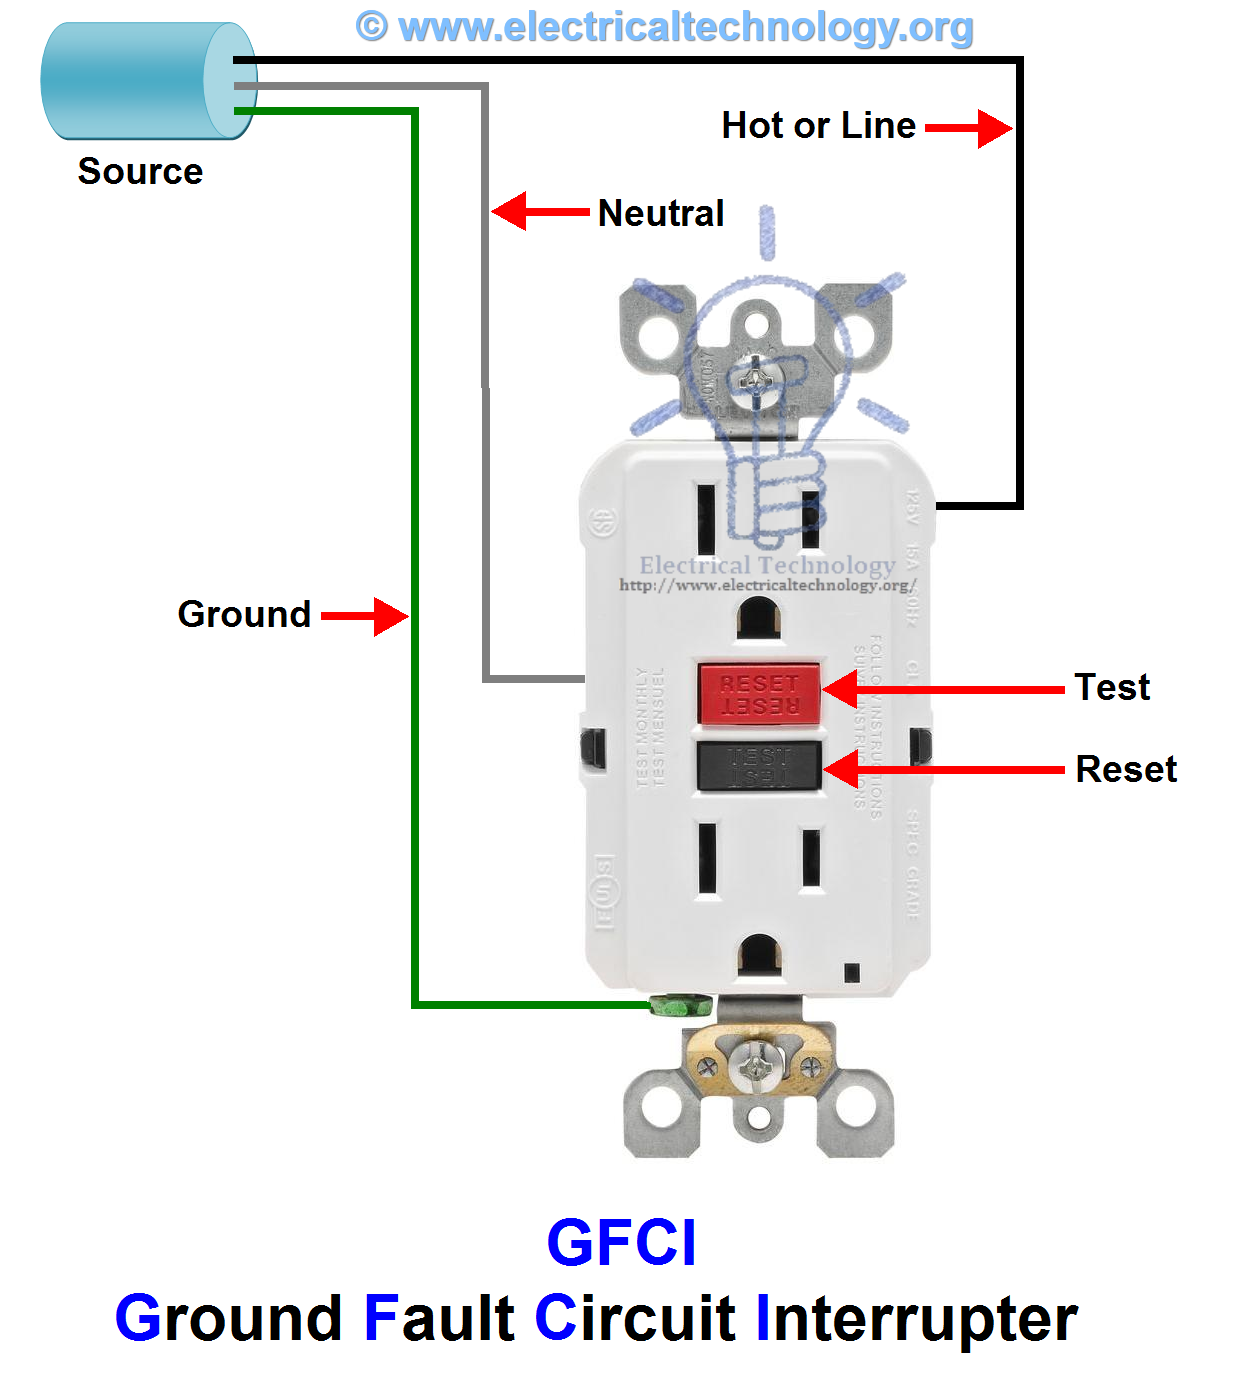 medium resolution of gfci ground fault circuit interrupter types working ground fault interrupter circuit diagram can39t reset a gfci outlet